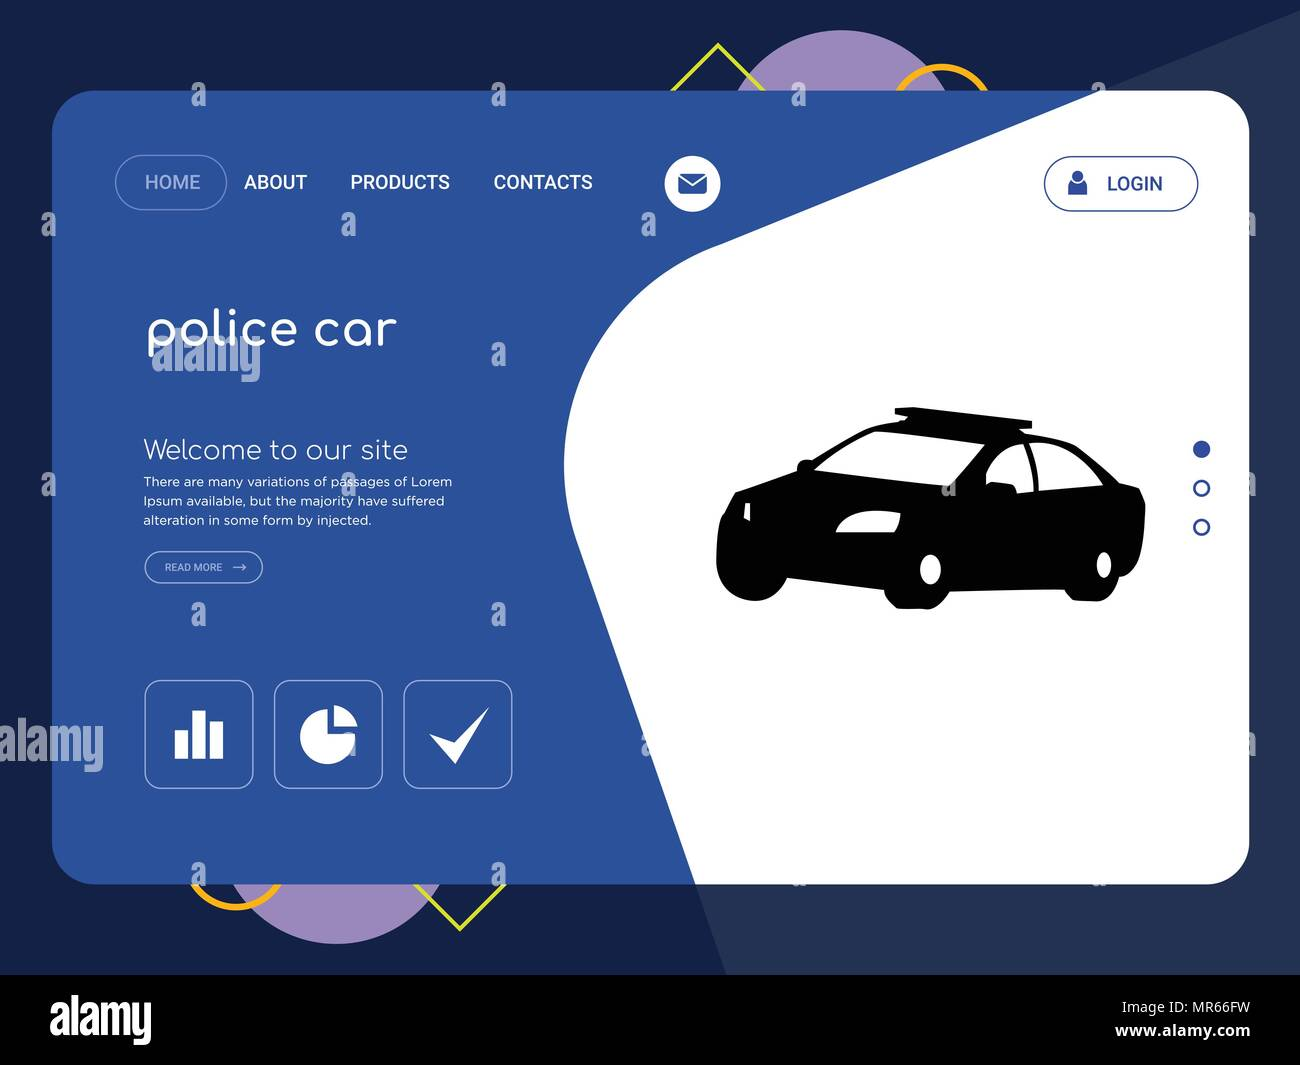 Police Car Website >> Quality One Page Police Car Website Template Vector Eps Modern Web